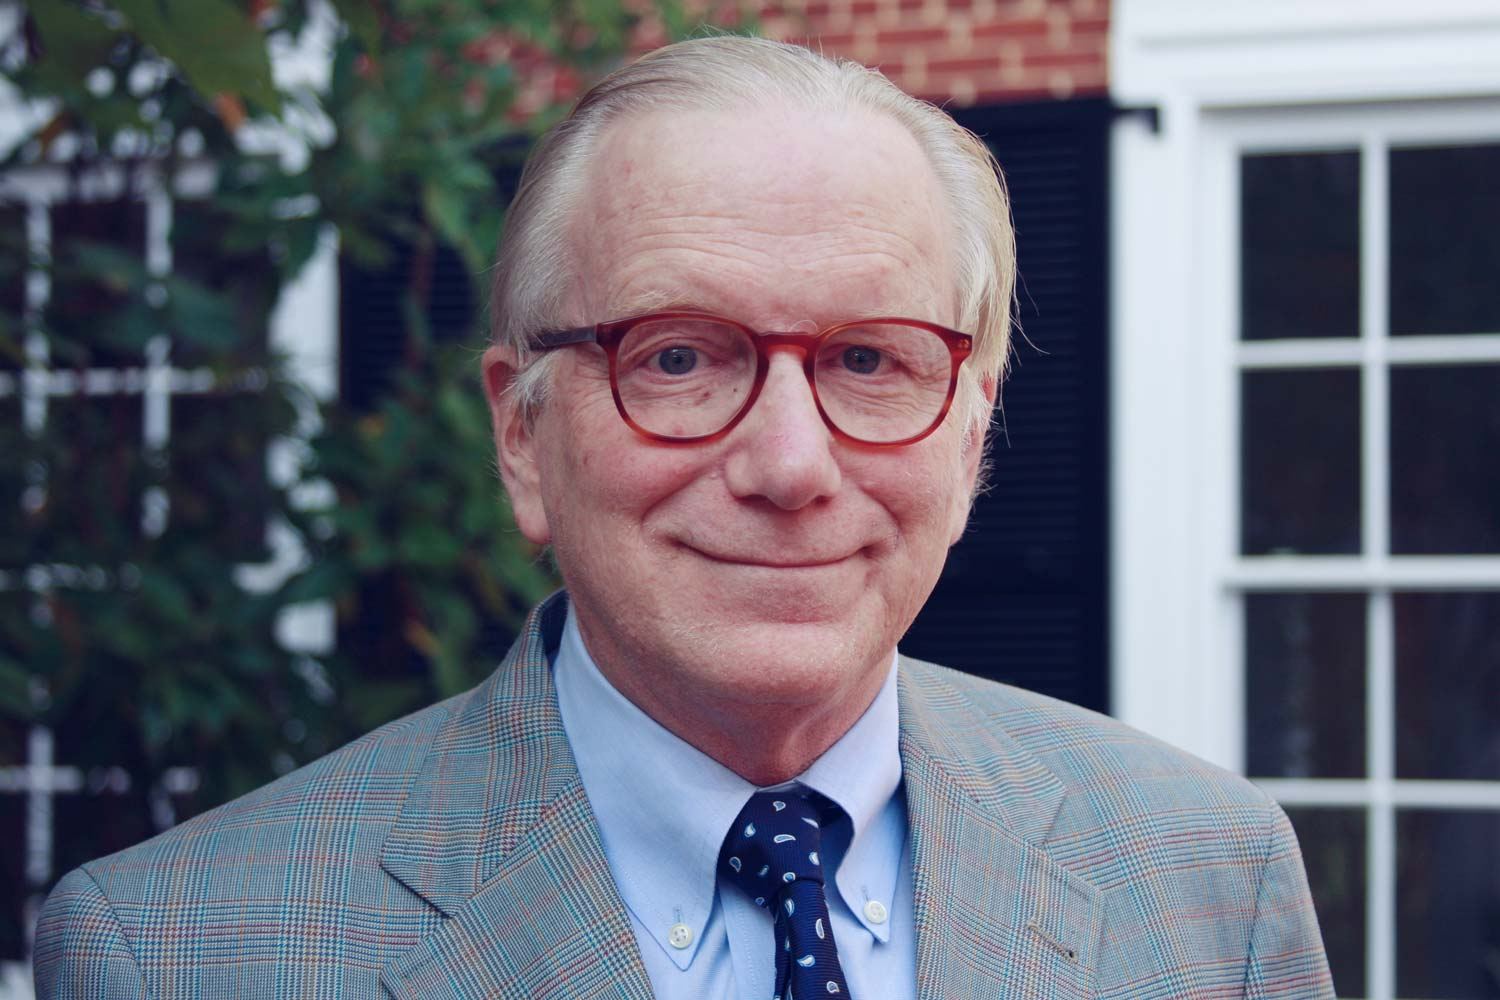 Professor James Rubin, who had worked at Darden for more than 25 years, died after a fall in his home in 2016.